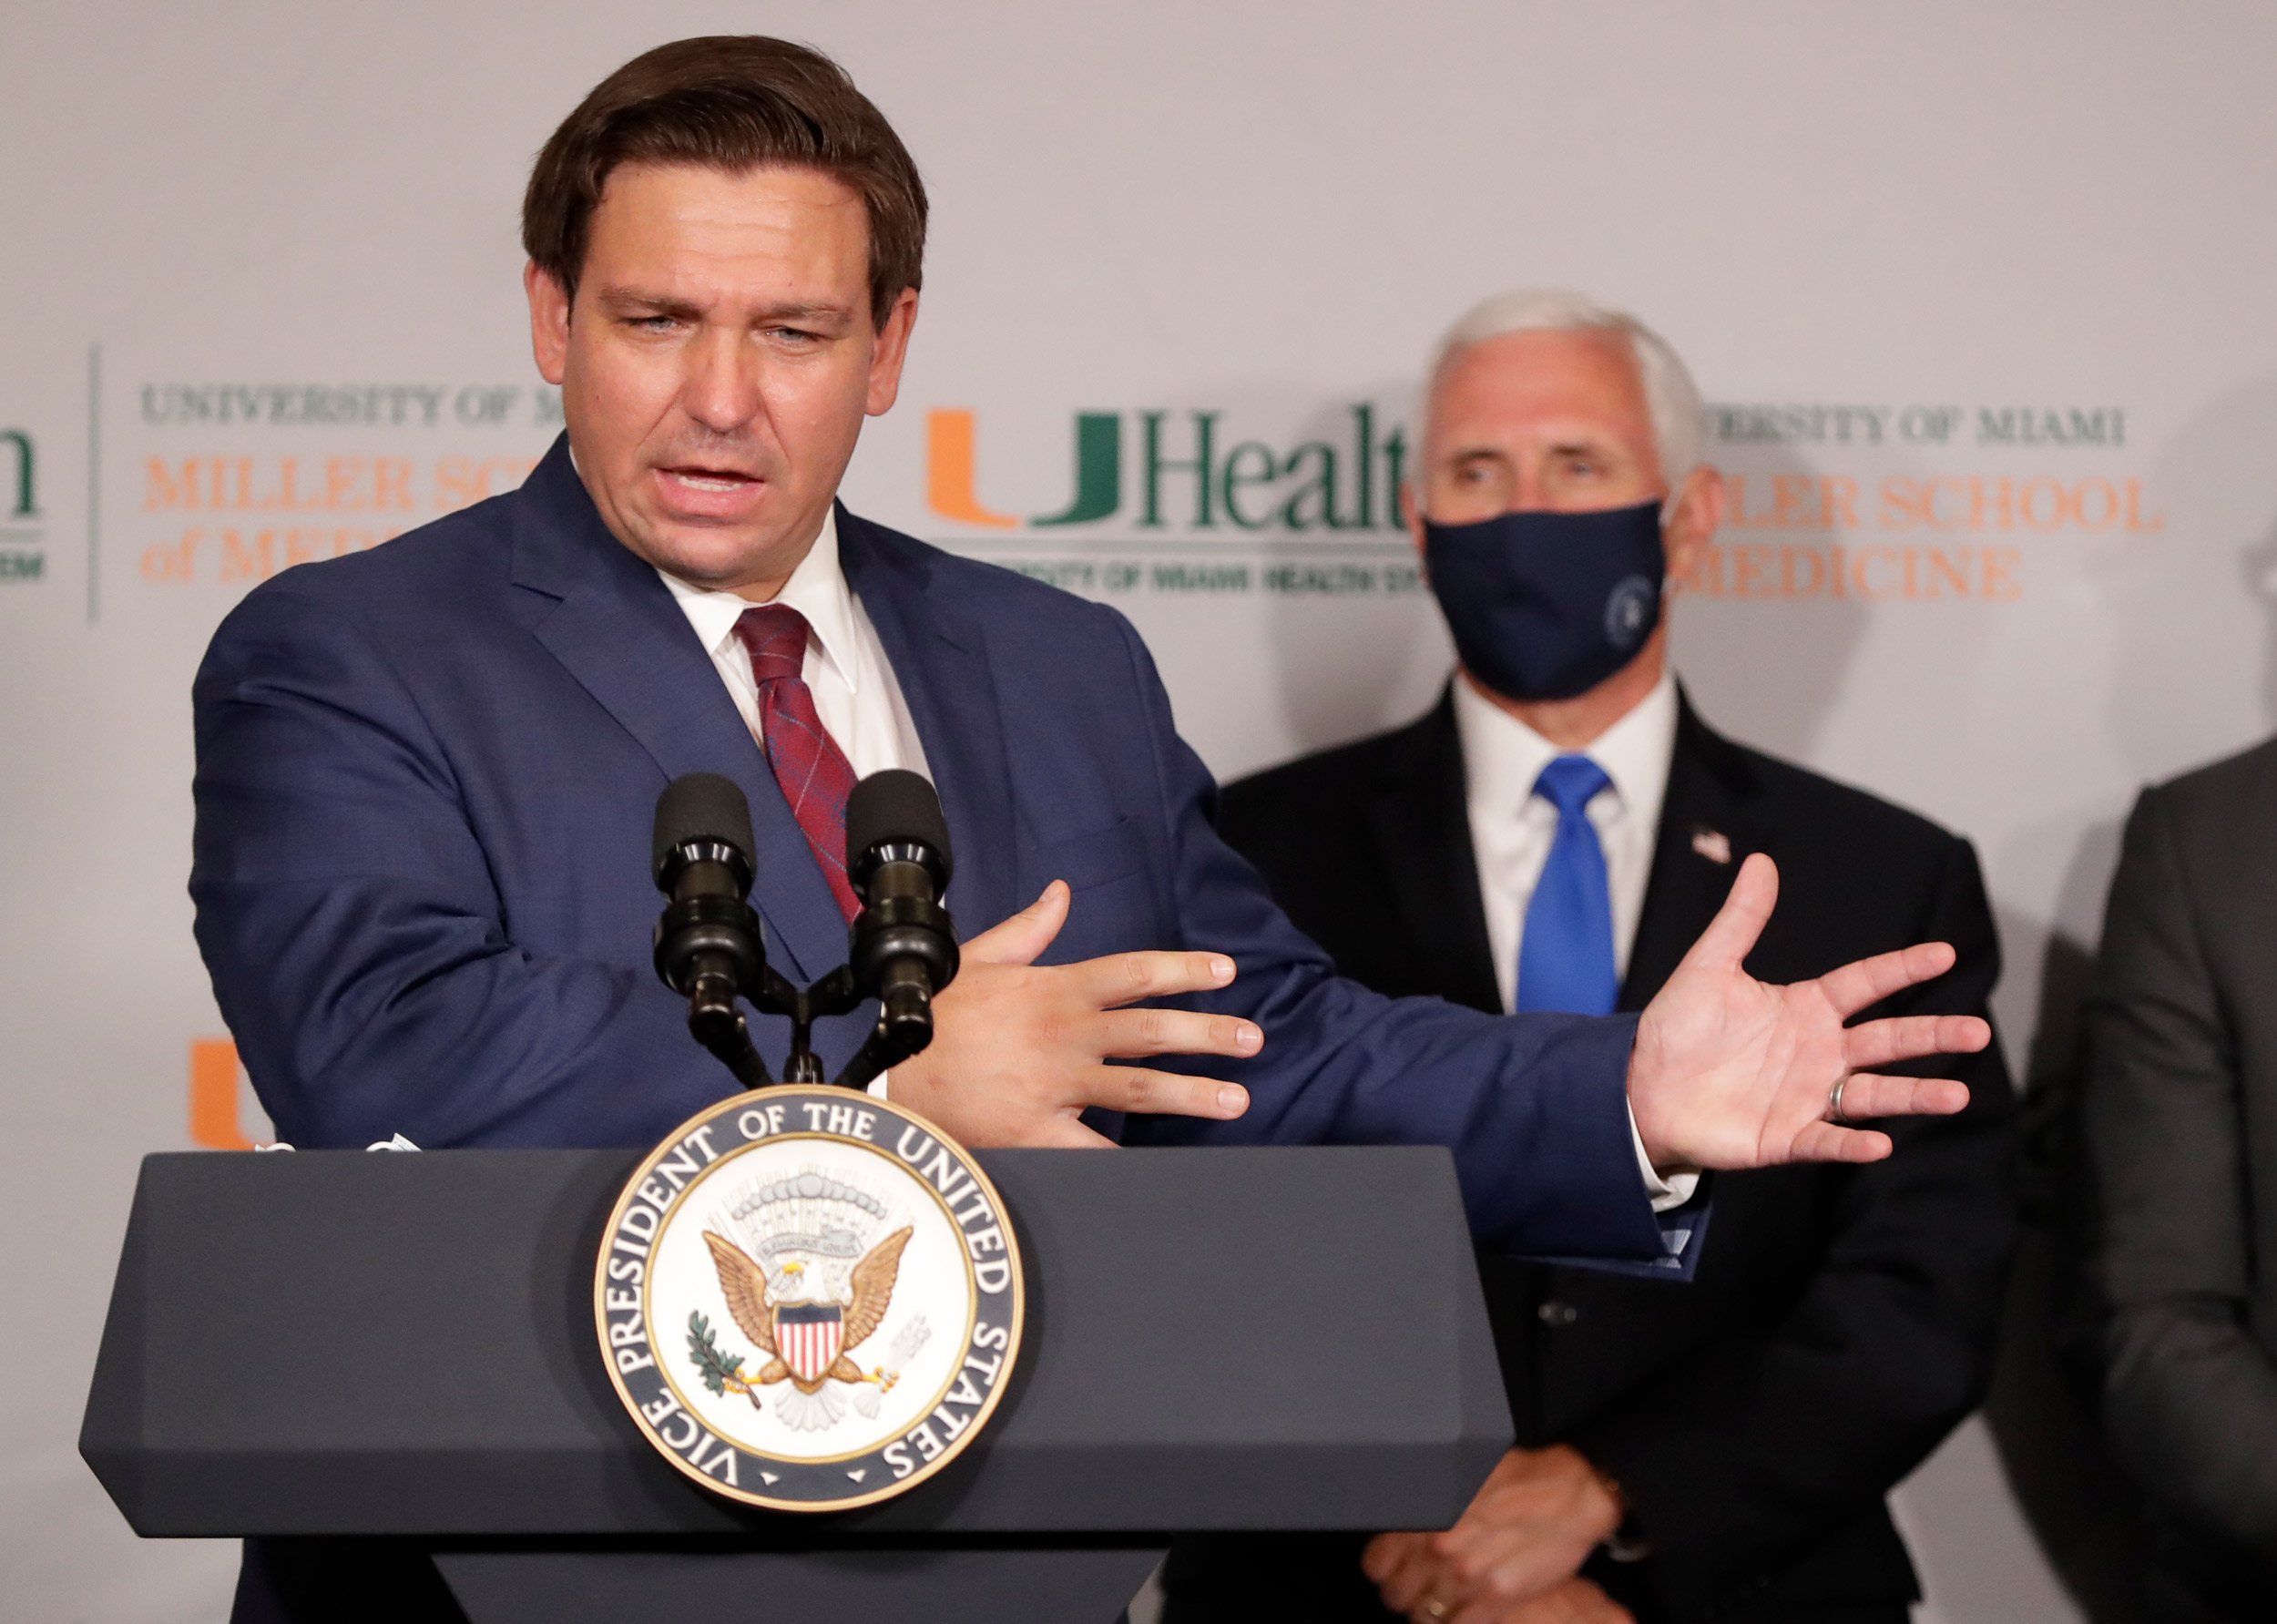 Florida Gov. Ron DeSantis, left, speaks during a news conference as Vice President Mike Pence at the University of Miami Miller School of Medicine Don Soffer Clinical Research Center on July 27 in Miami.